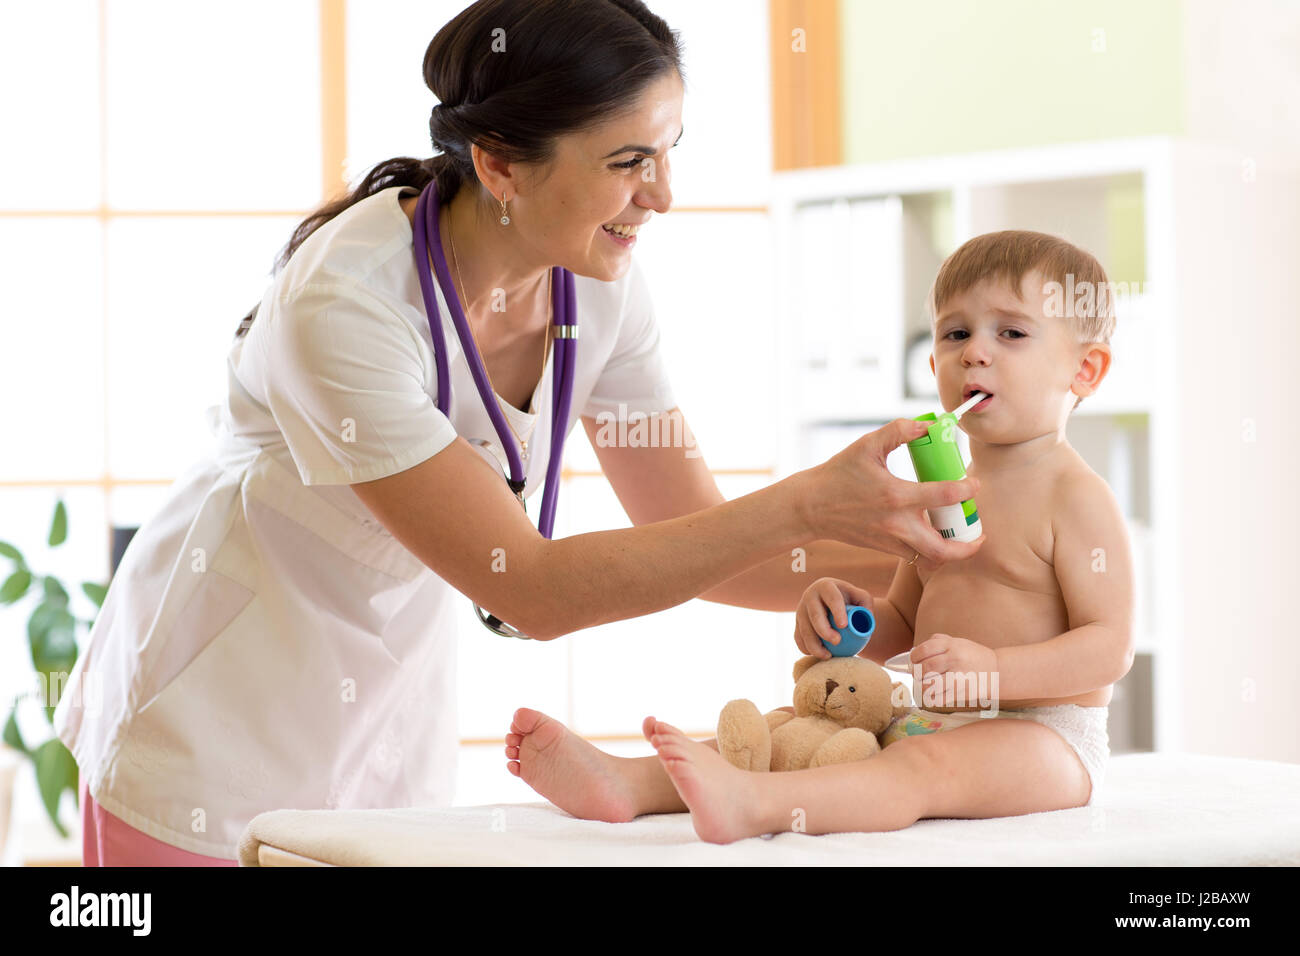 Kid boy having respiratory illness helped by health professional doctor with inhaler - Stock Image